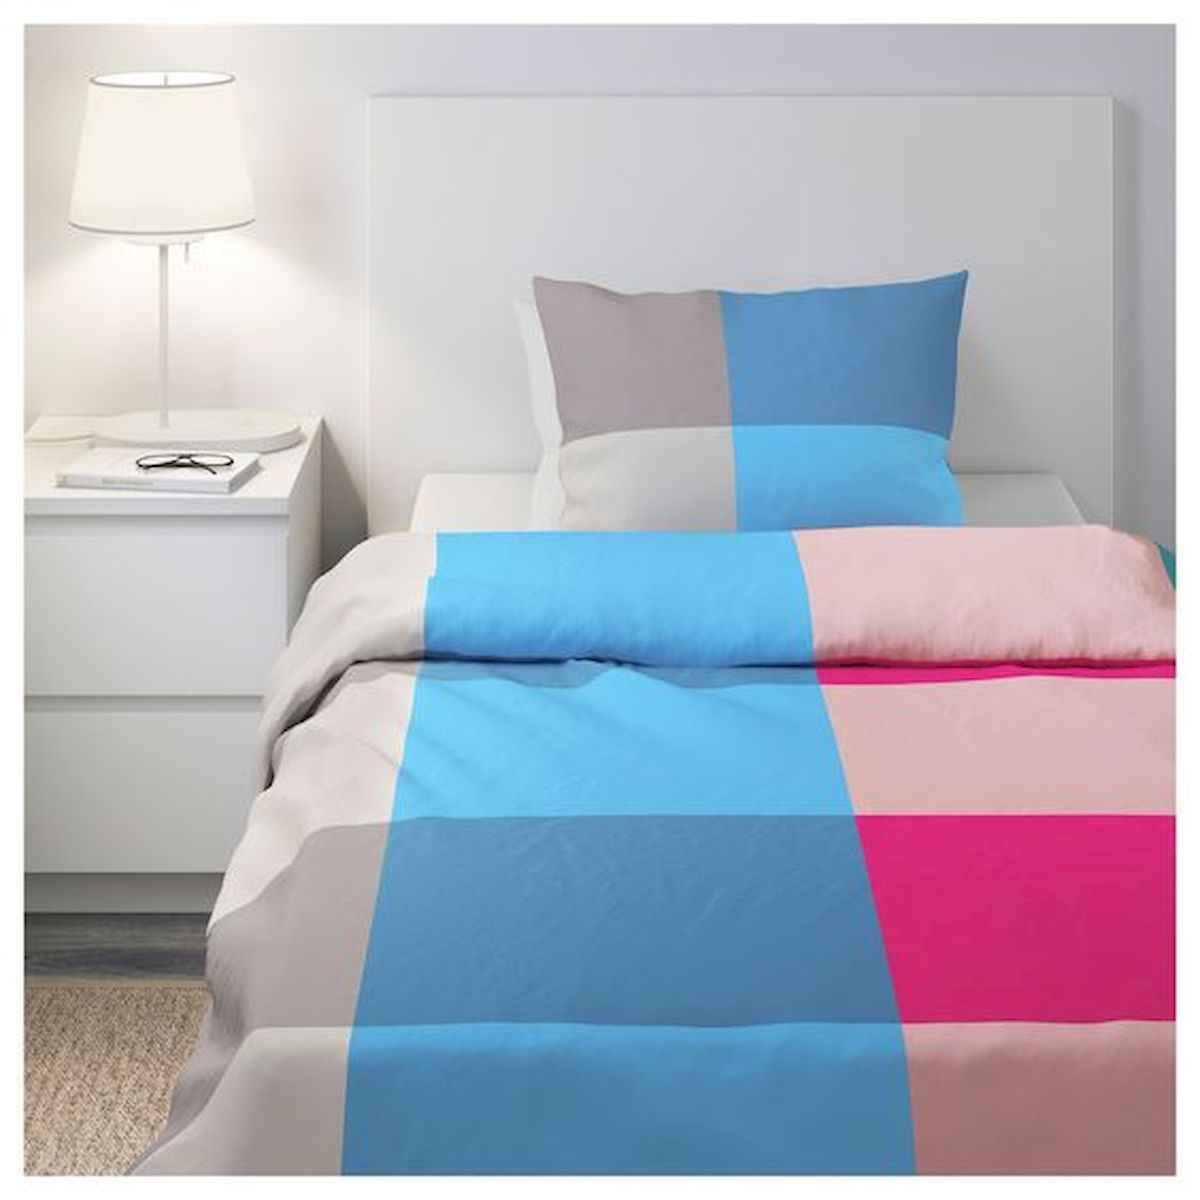 70+ Amazing Colorful Bedroom Decor Ideas And Remodel for Summer Project (8)